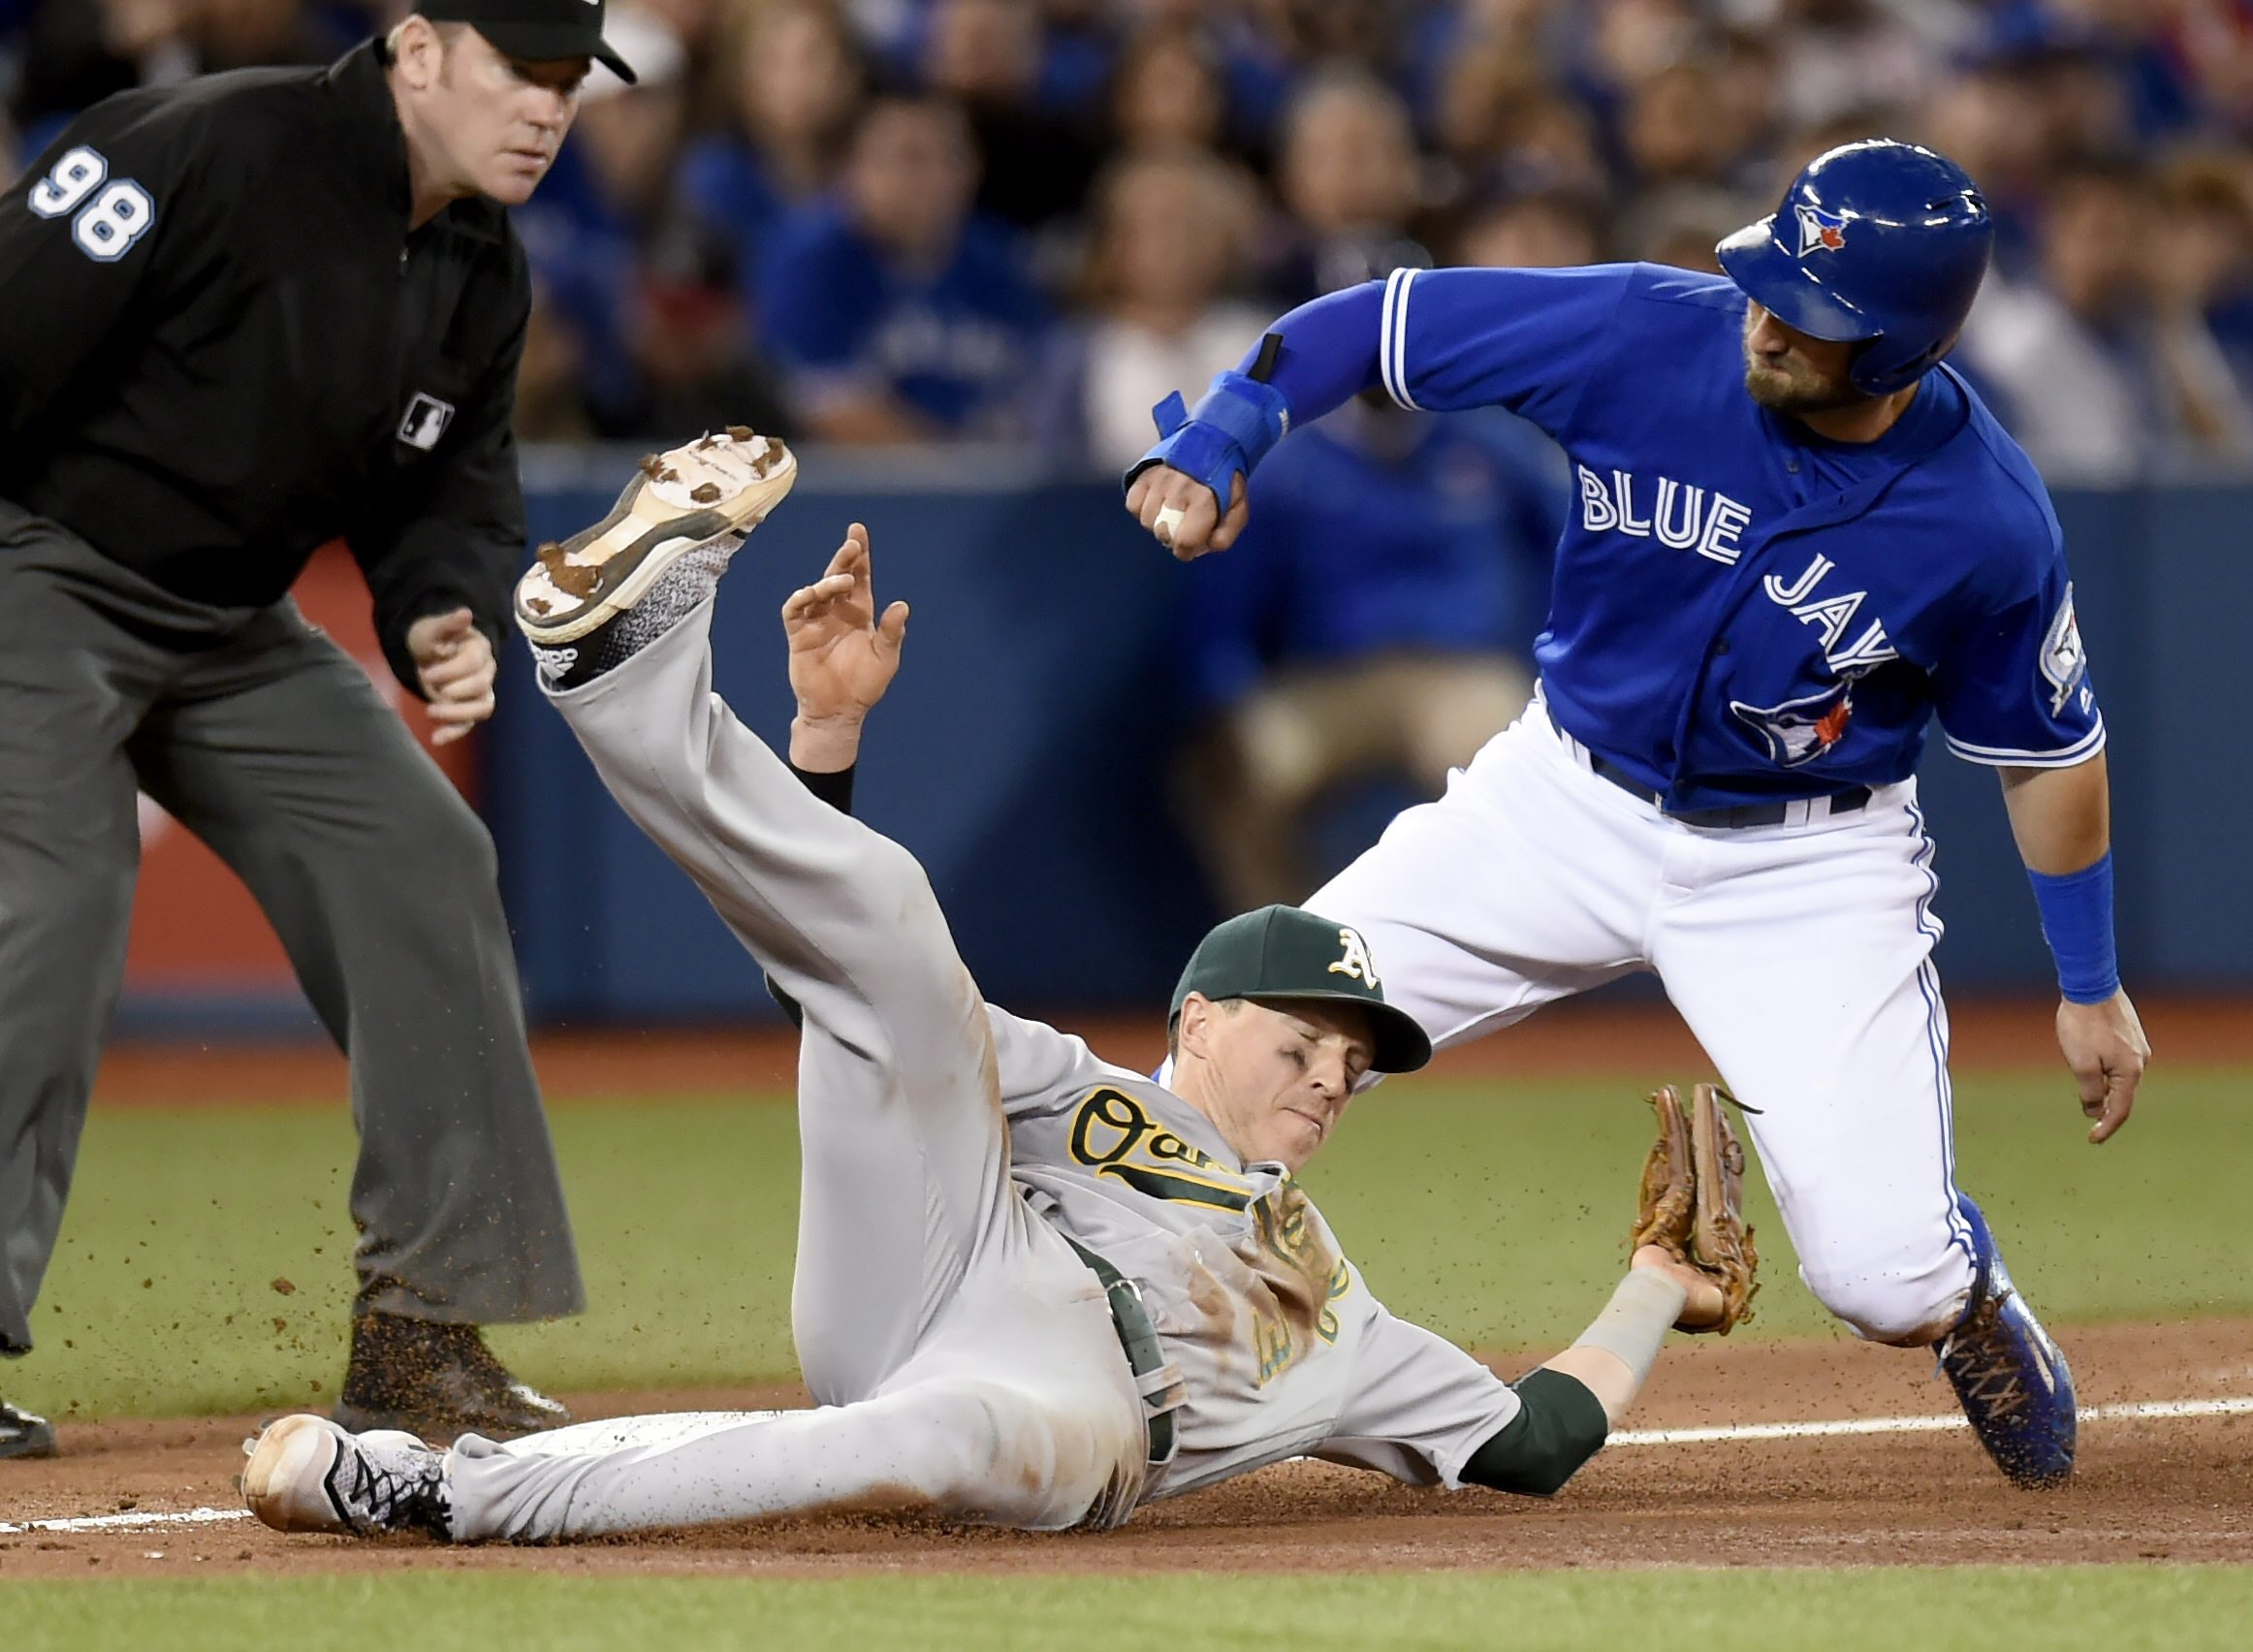 Toronto Blue Jays' Kevin Pillar, right, beats the tag from Oakland Athletics' Chris Coghlan to steal third base during the fifth inning of a baseball game in Toronto, Sunday, April 24, 2016. (Frank Gunn/The Canadian Press via AP) MANDATORY CREDIT